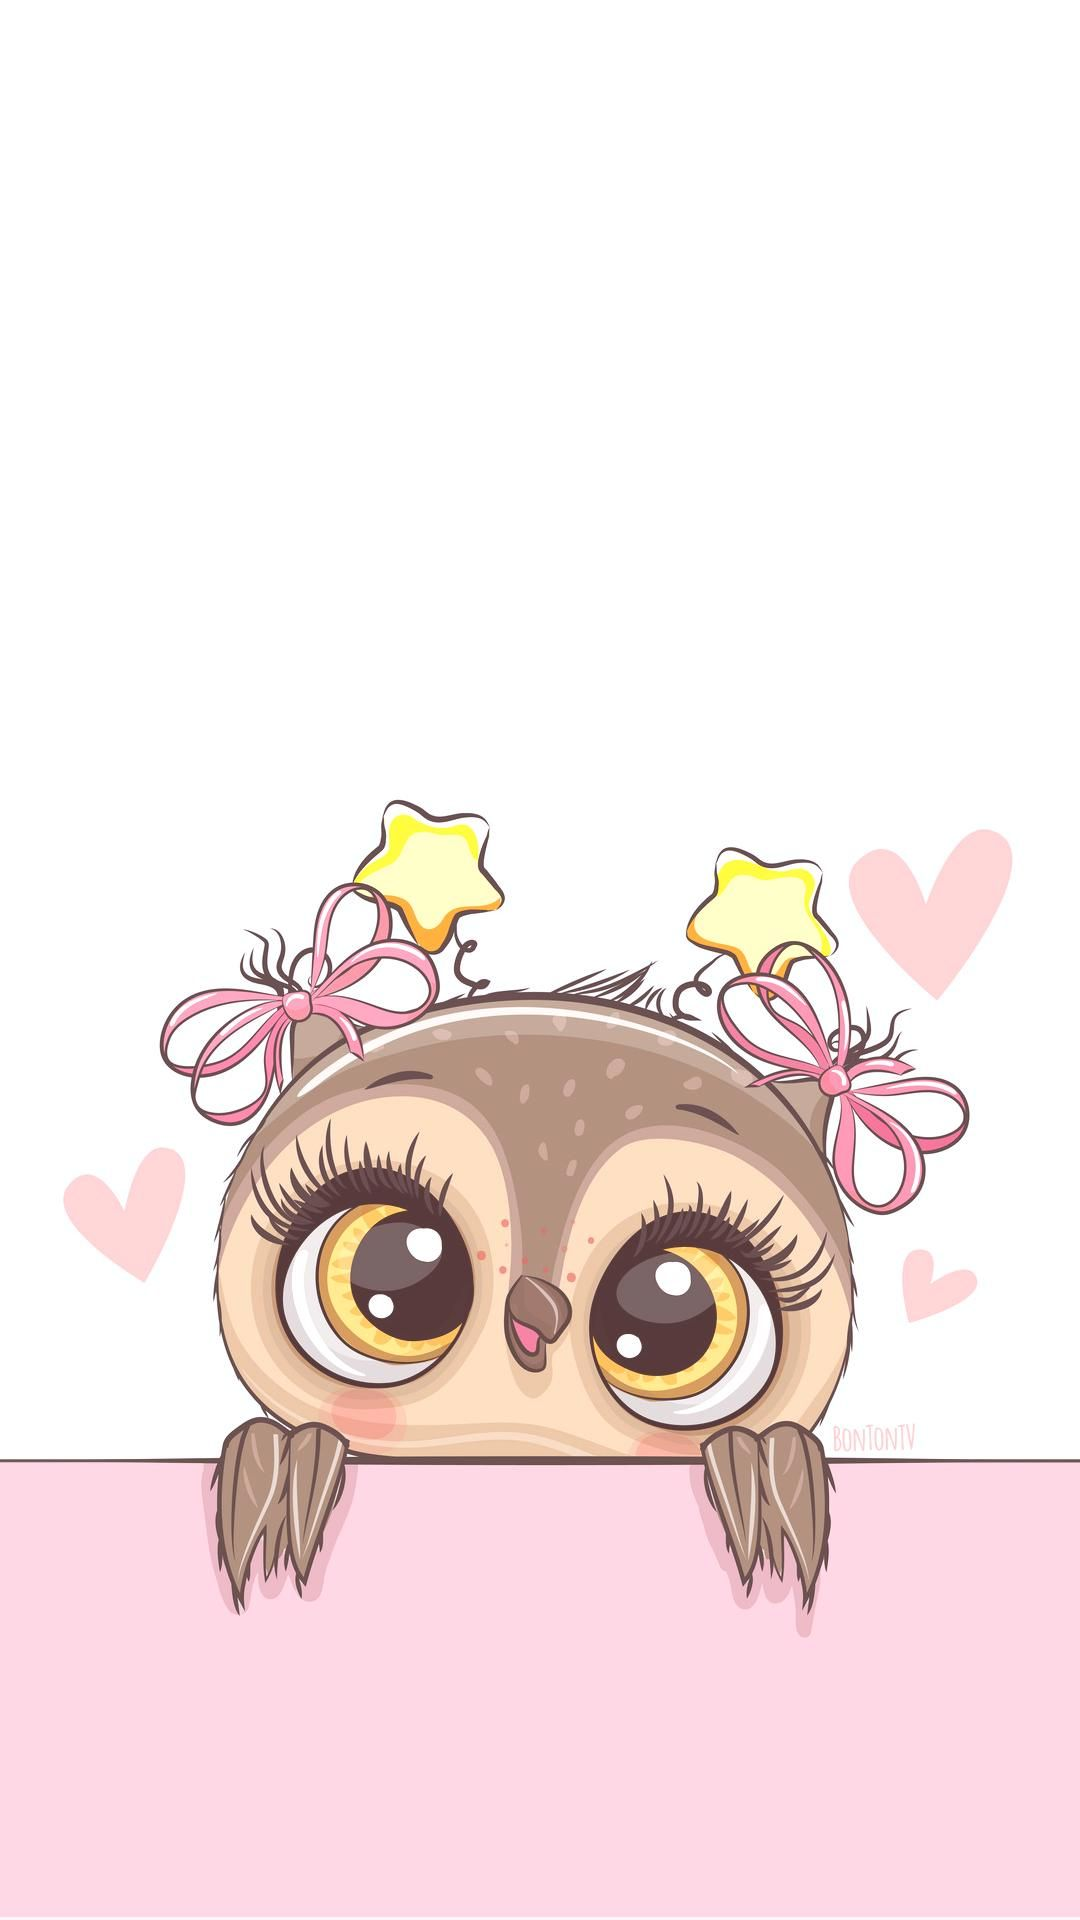 Phone Wallpapers HD Cute Owl  by BonTon TV  Free Backgrounds 1080x1920 wallpapers iPhone smartphone Here you can find a collection of elegant cute and girly colorful glit...